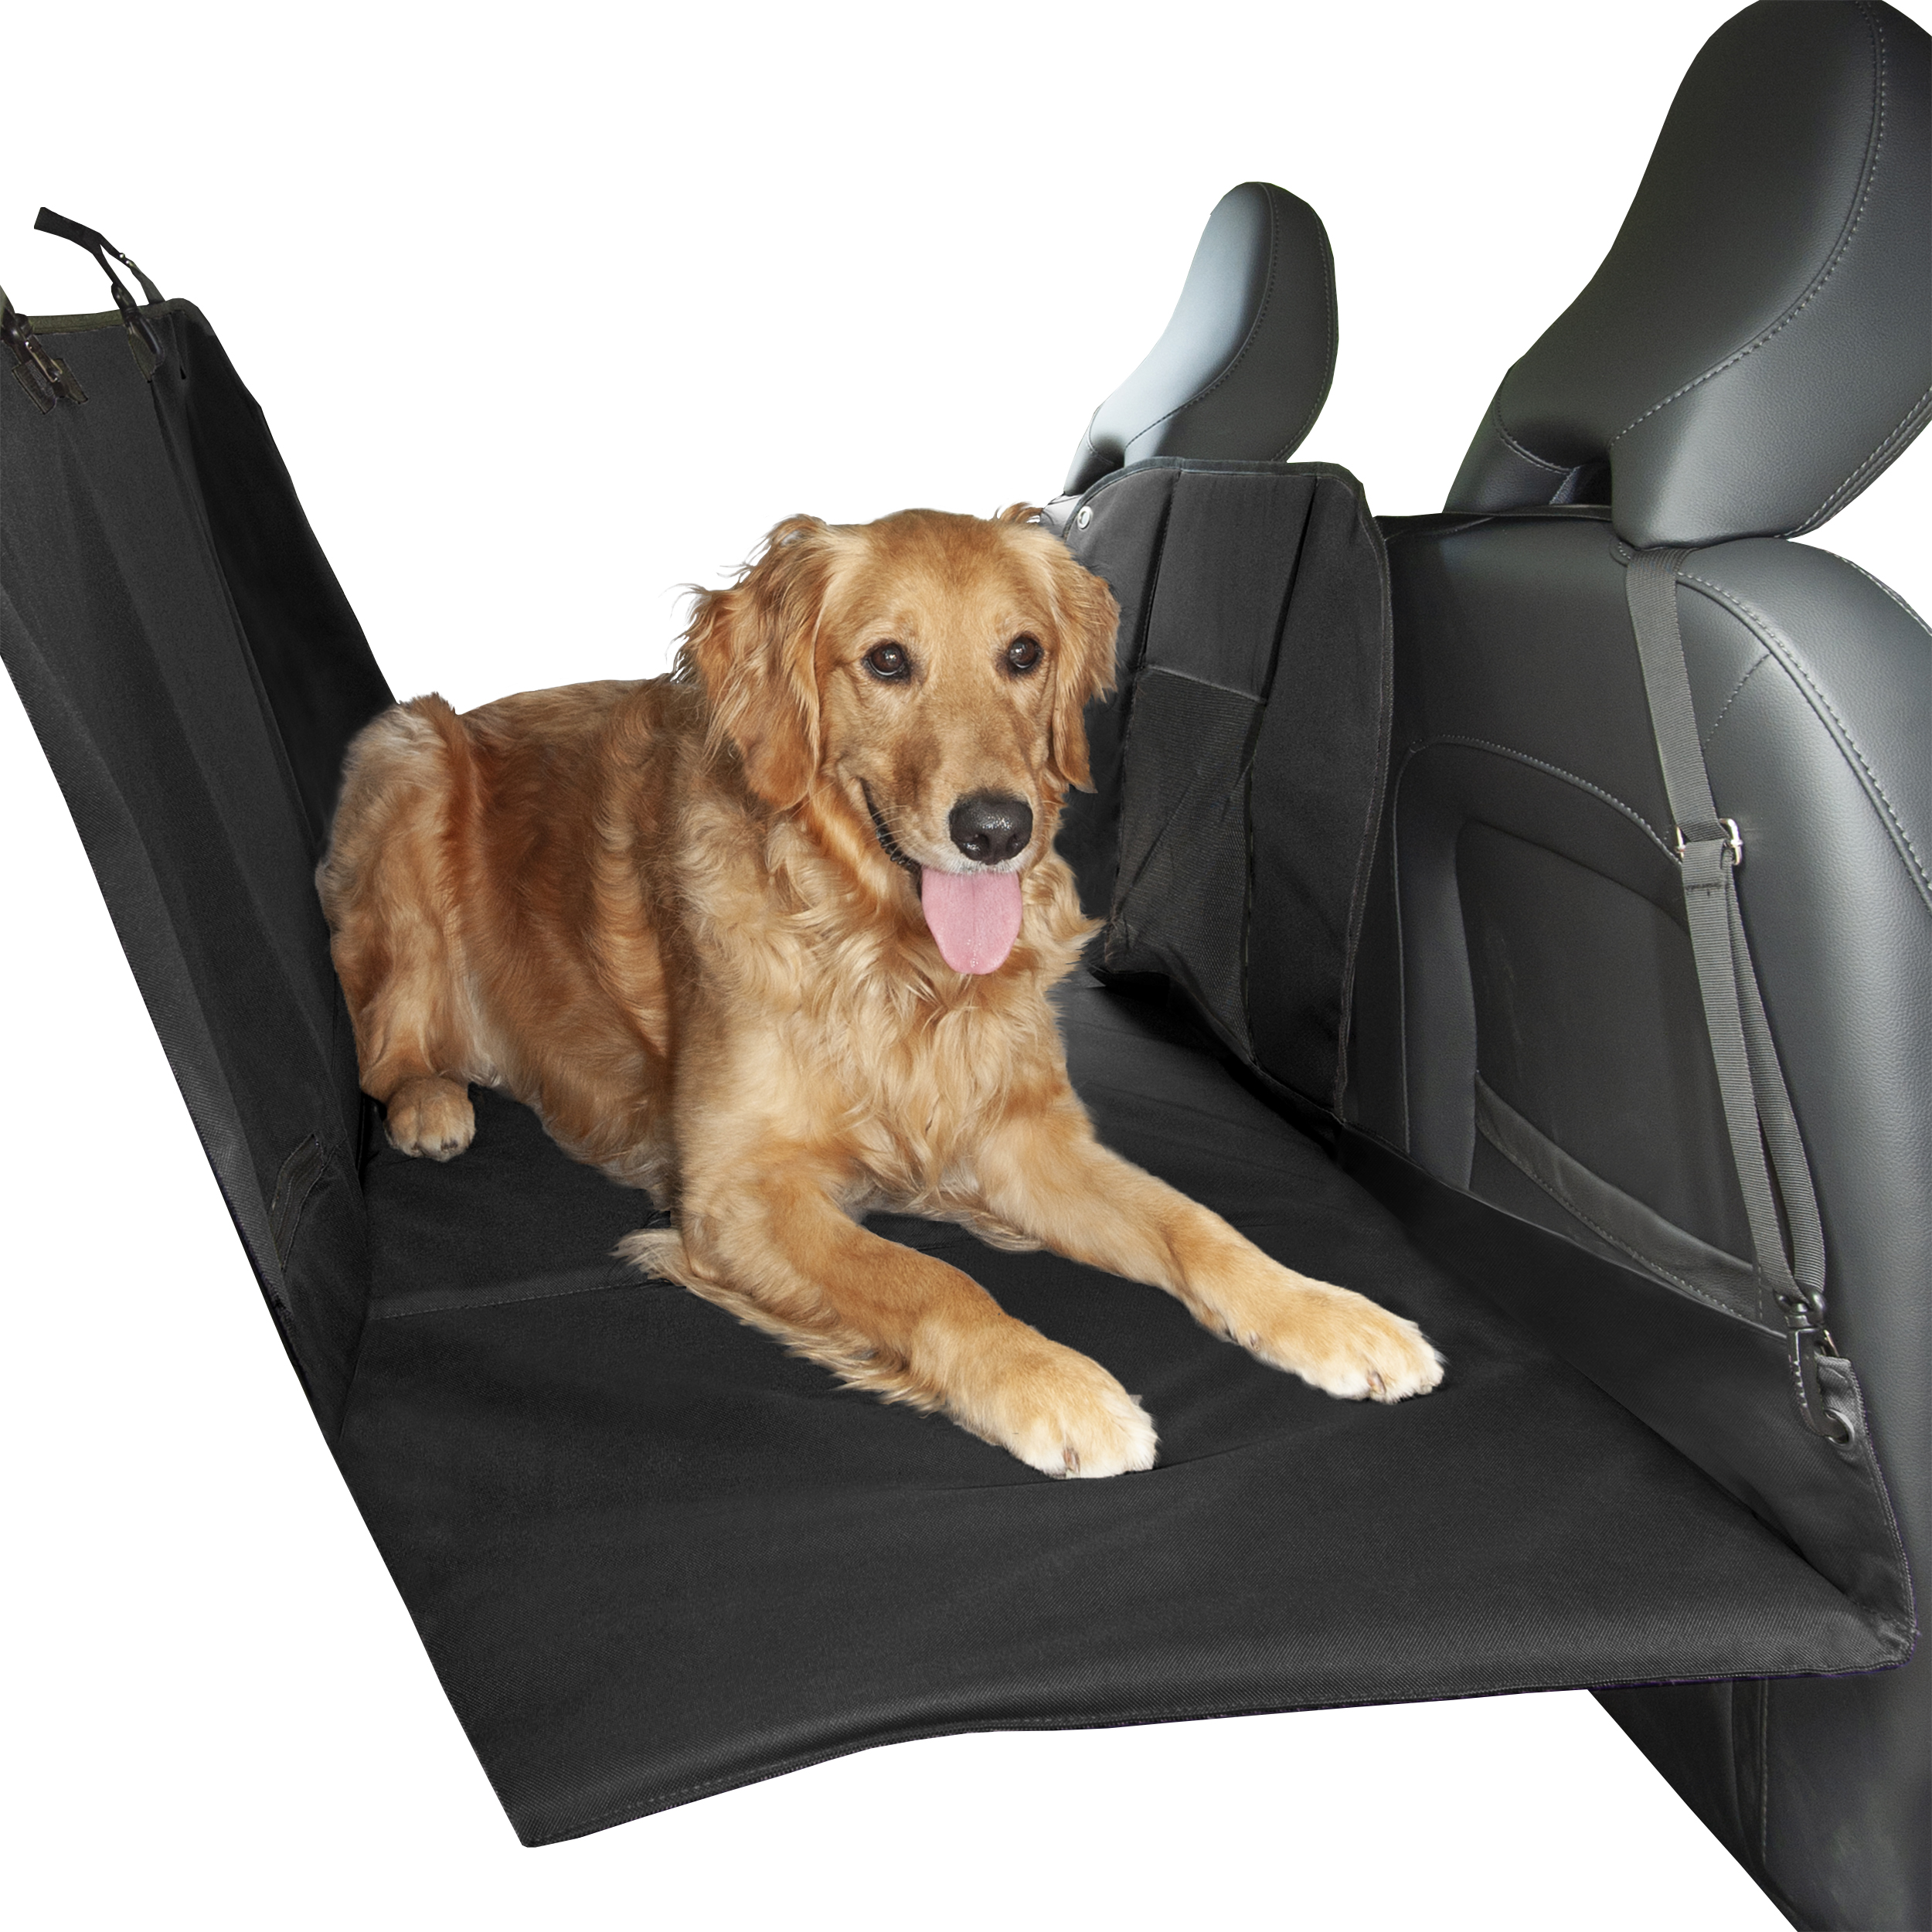 Non Slip Booster Seat For Small Medium Dogs /& Puppies Posh Buddy Dog Car Seat with Cooling Mat /& Seat Belt Padded Extra Strong Fold Down Panels Car Seat Belt Clip Quilted Waterproof 2in1